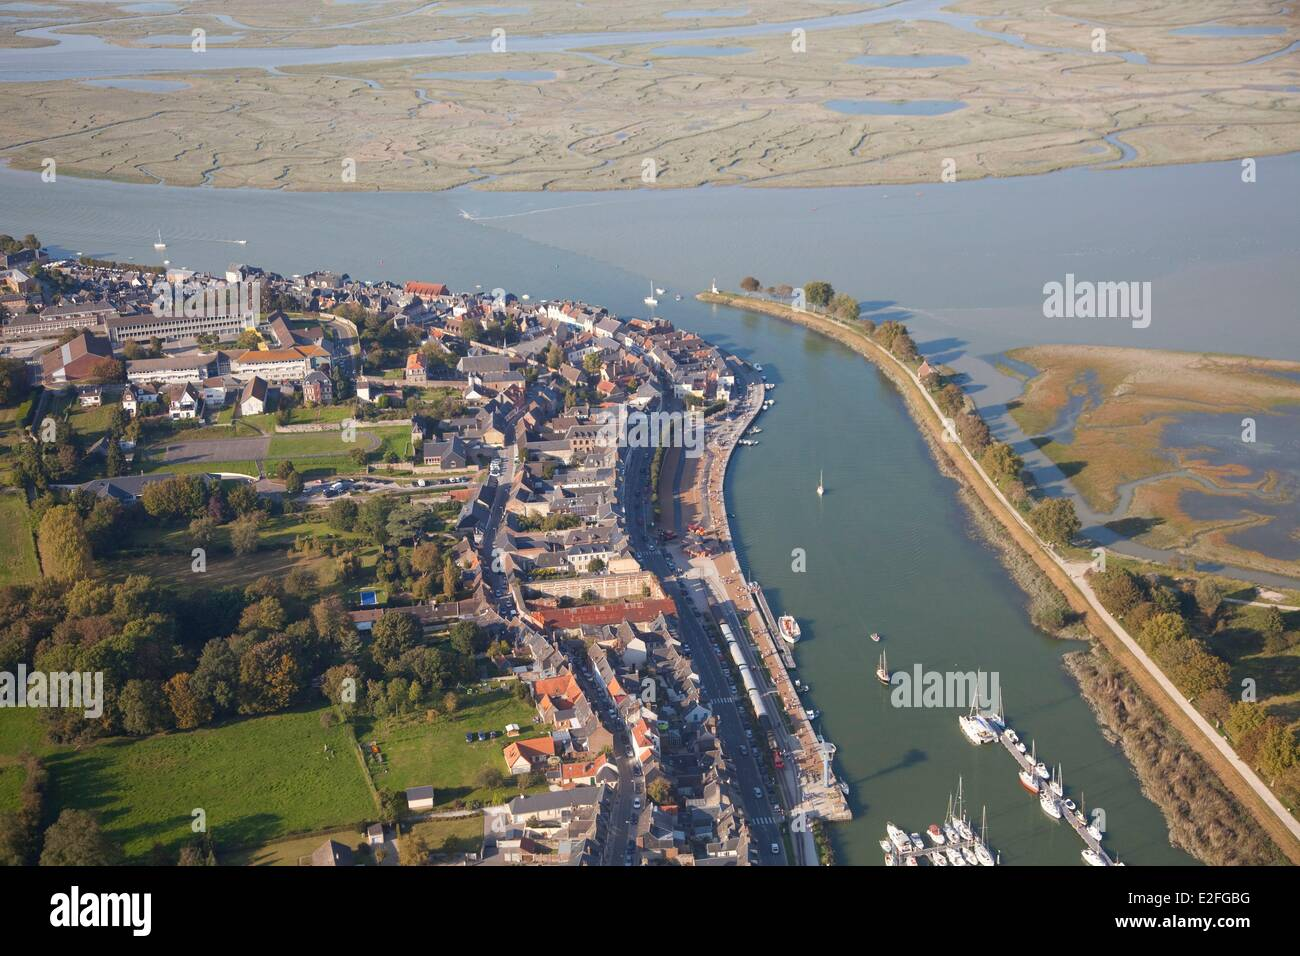 France somme baie de somme saint valery sur somme marina aerial stock photo royalty free - Chambre saint valery sur somme ...